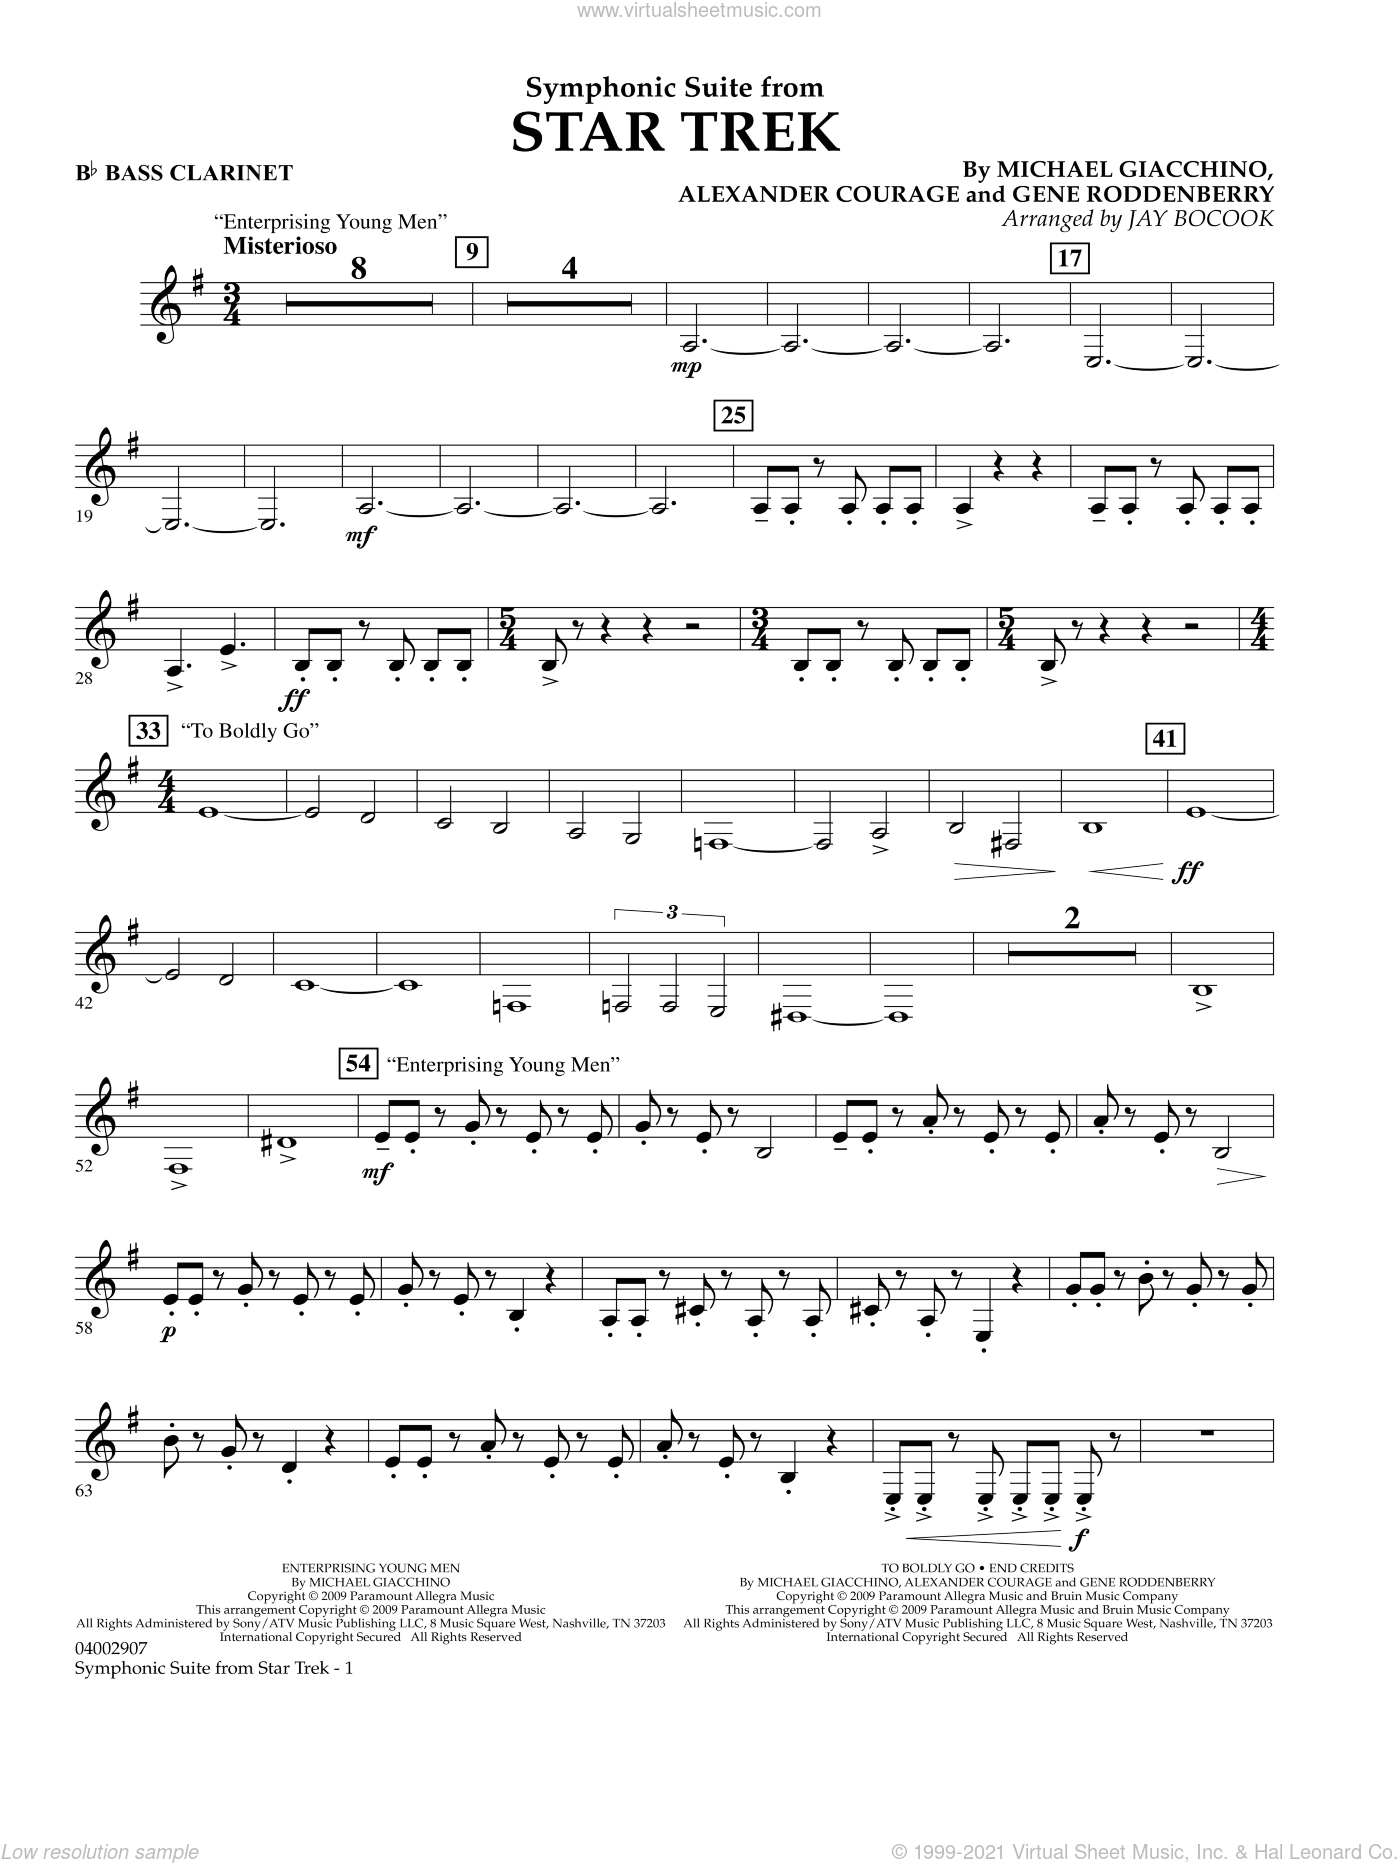 Symphonic Suite from Star Trek sheet music for concert band (Bb bass clarinet) by Alexander Courage